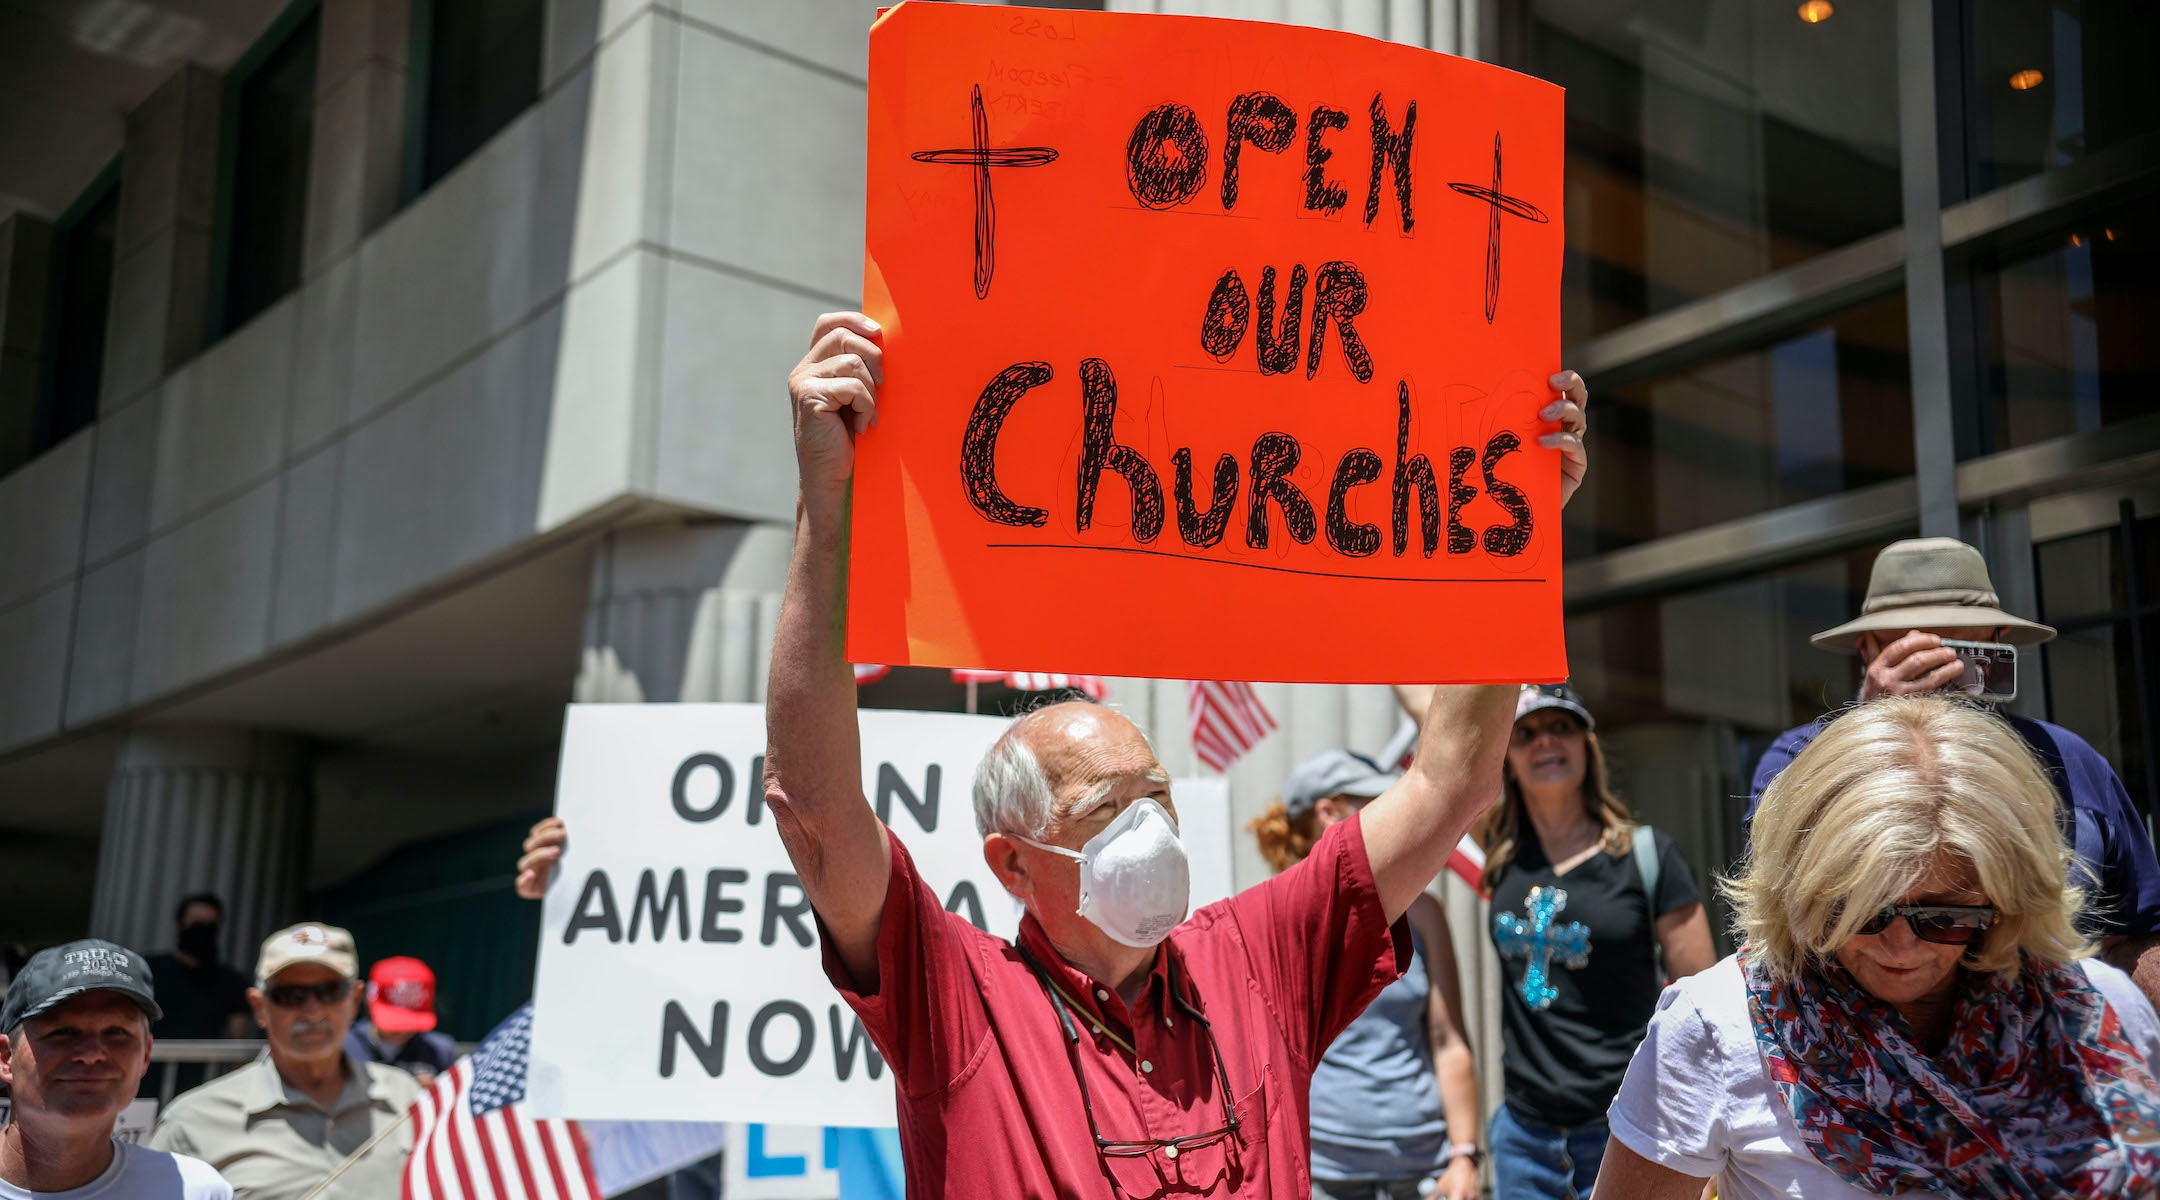 Synagogues demur as Trump demands that states let houses of worship reopen